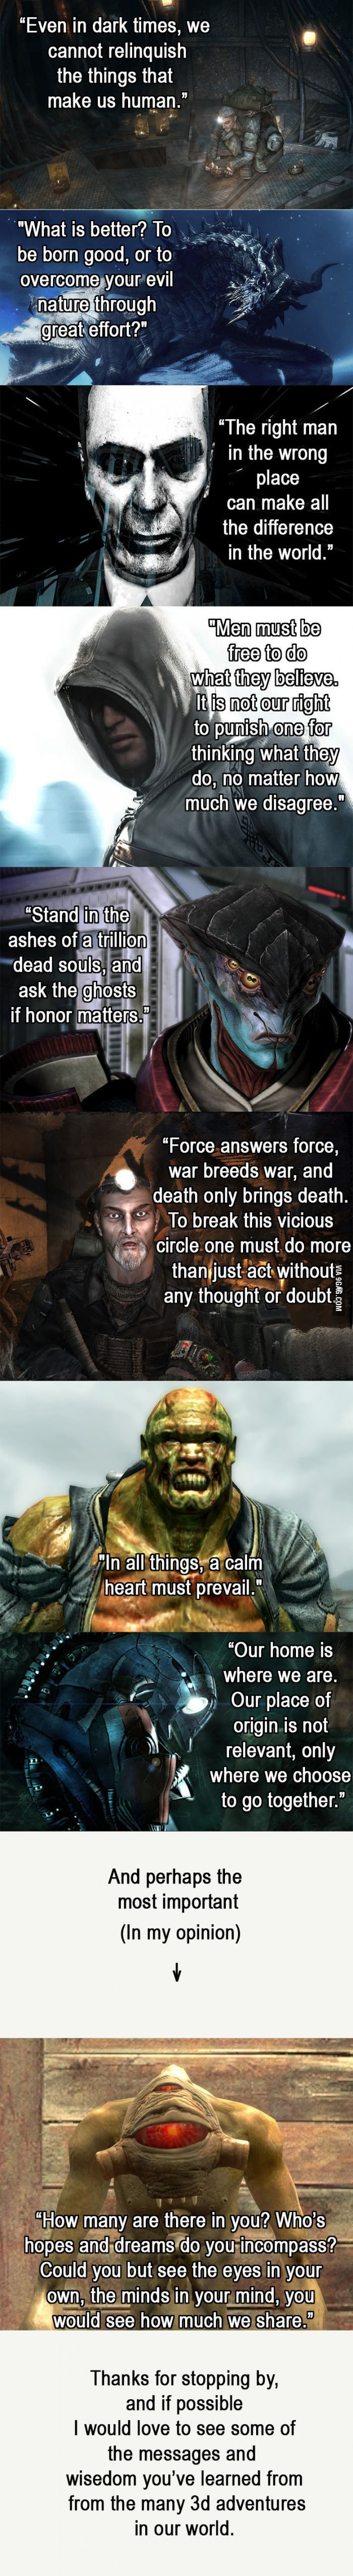 When gaming quotes get deep.